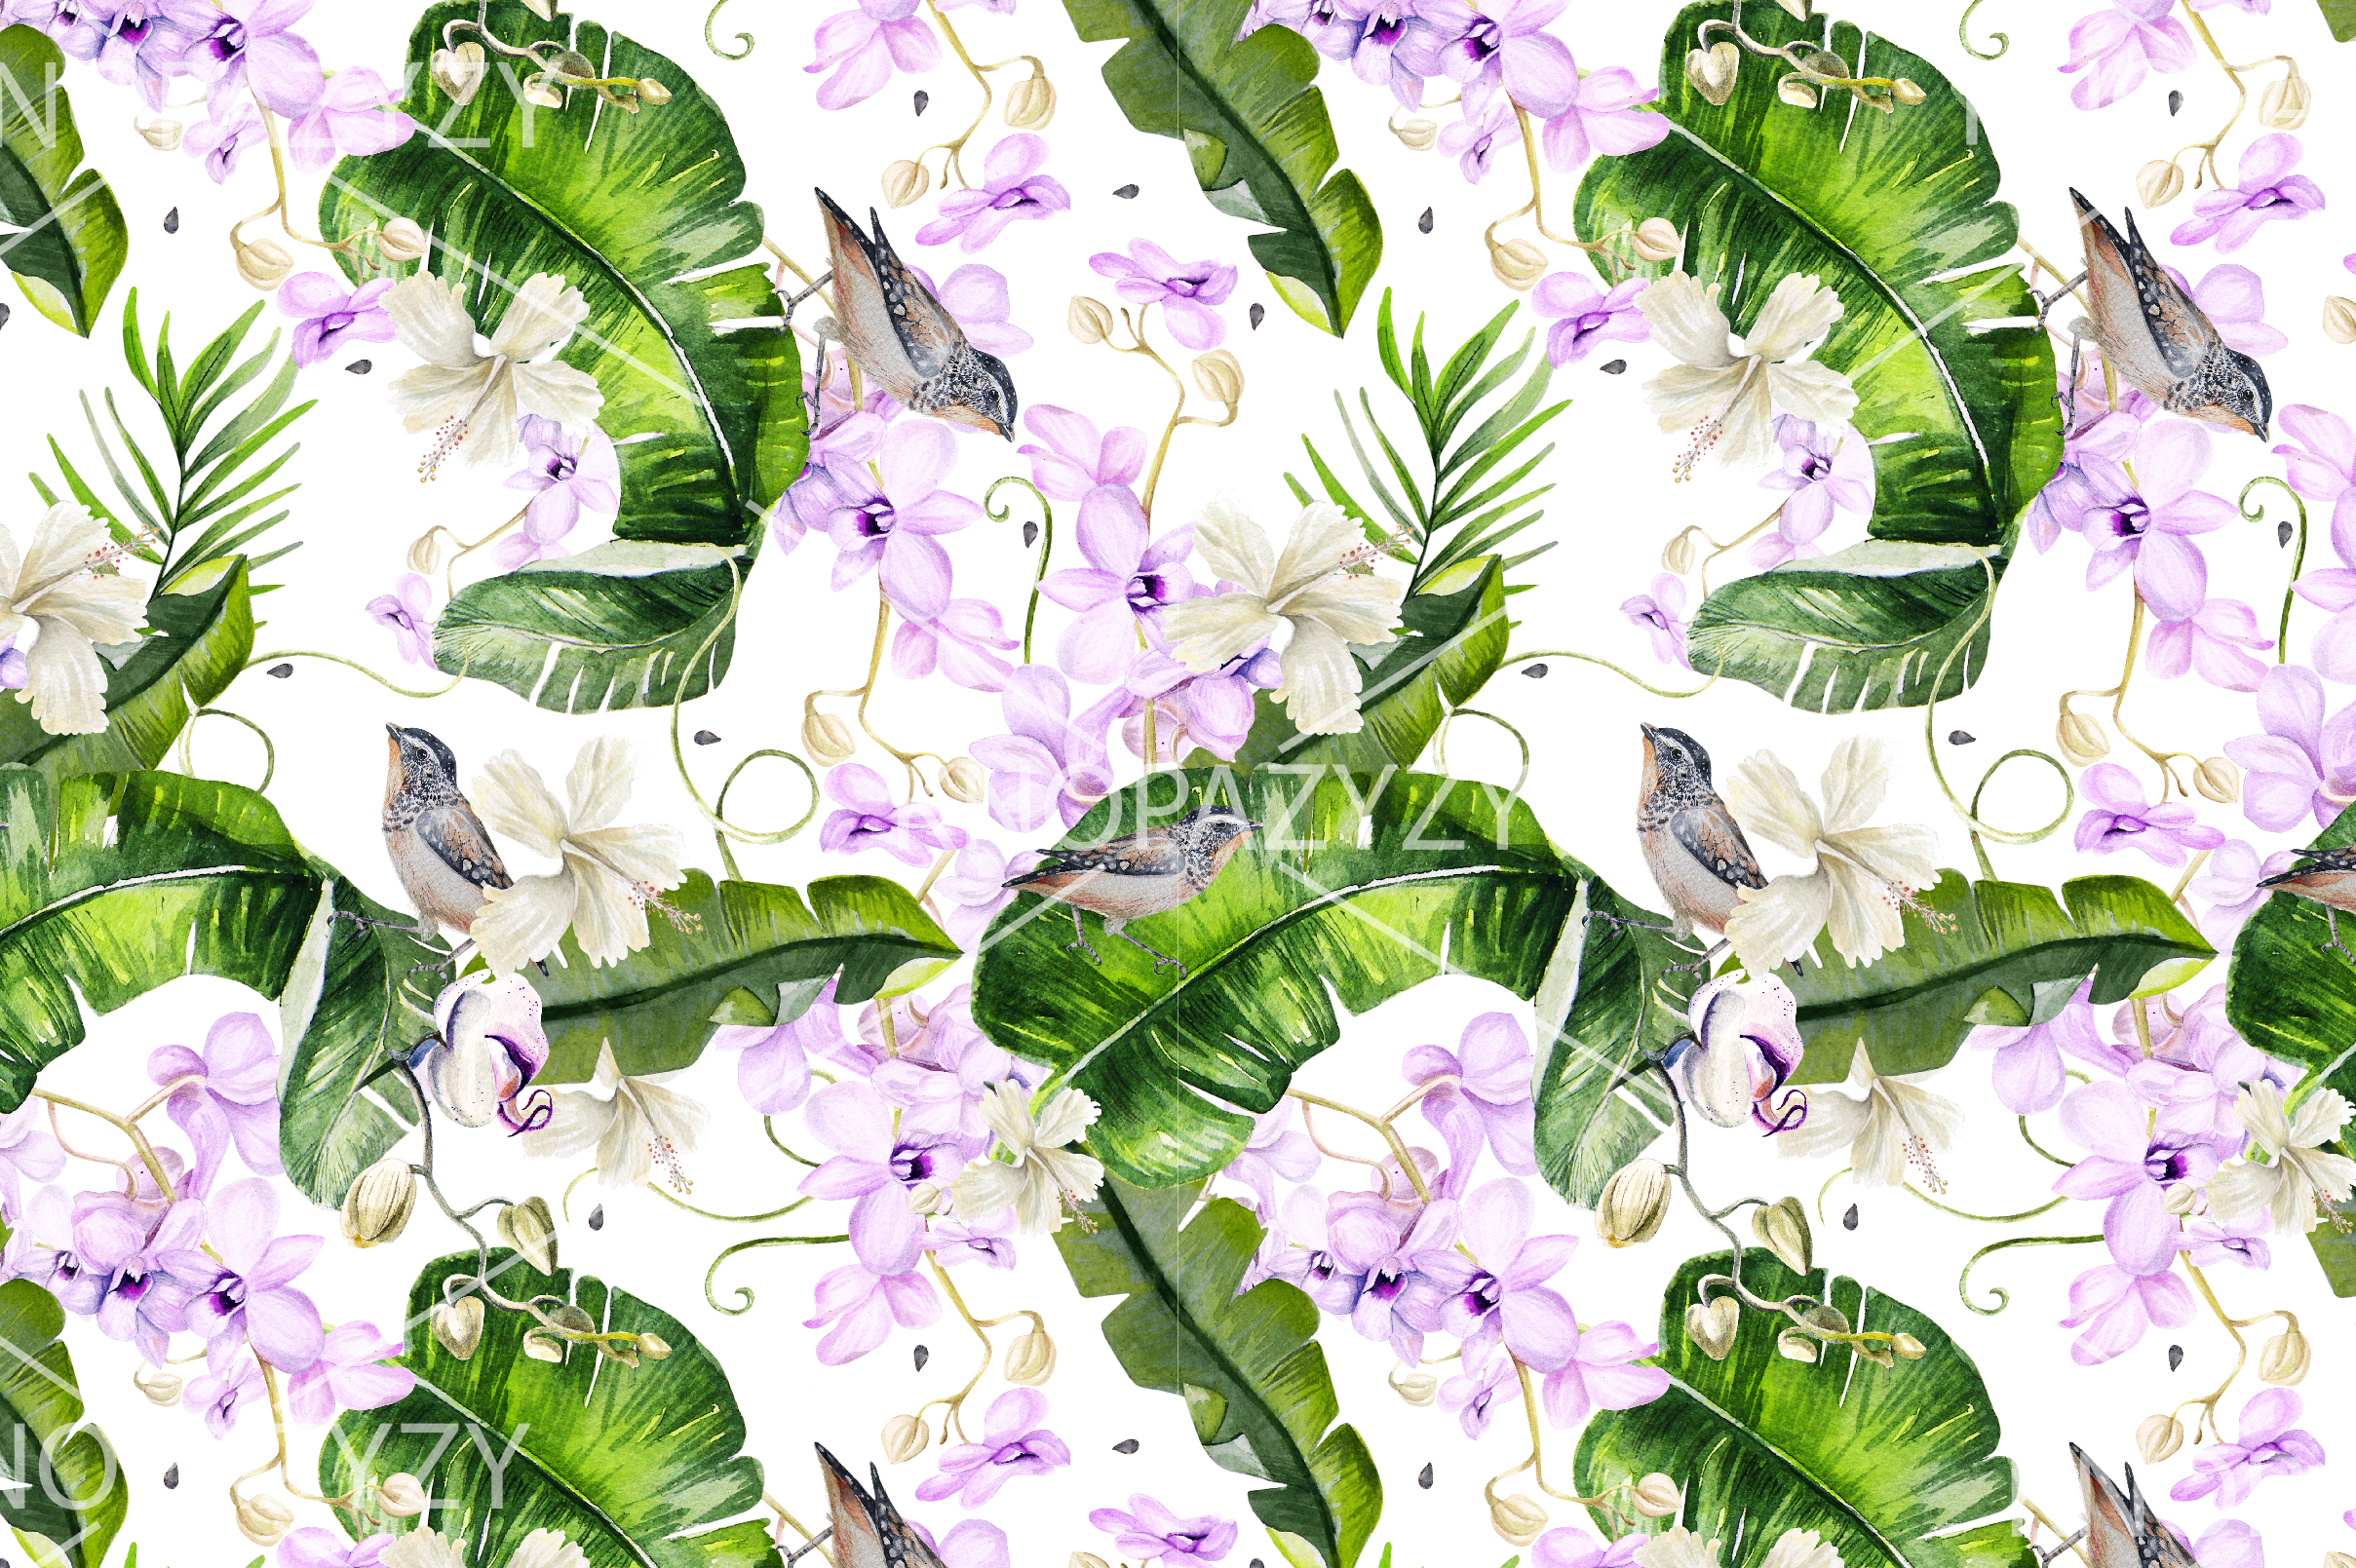 16 Hand Drawn Watercolor Pattern example image 2